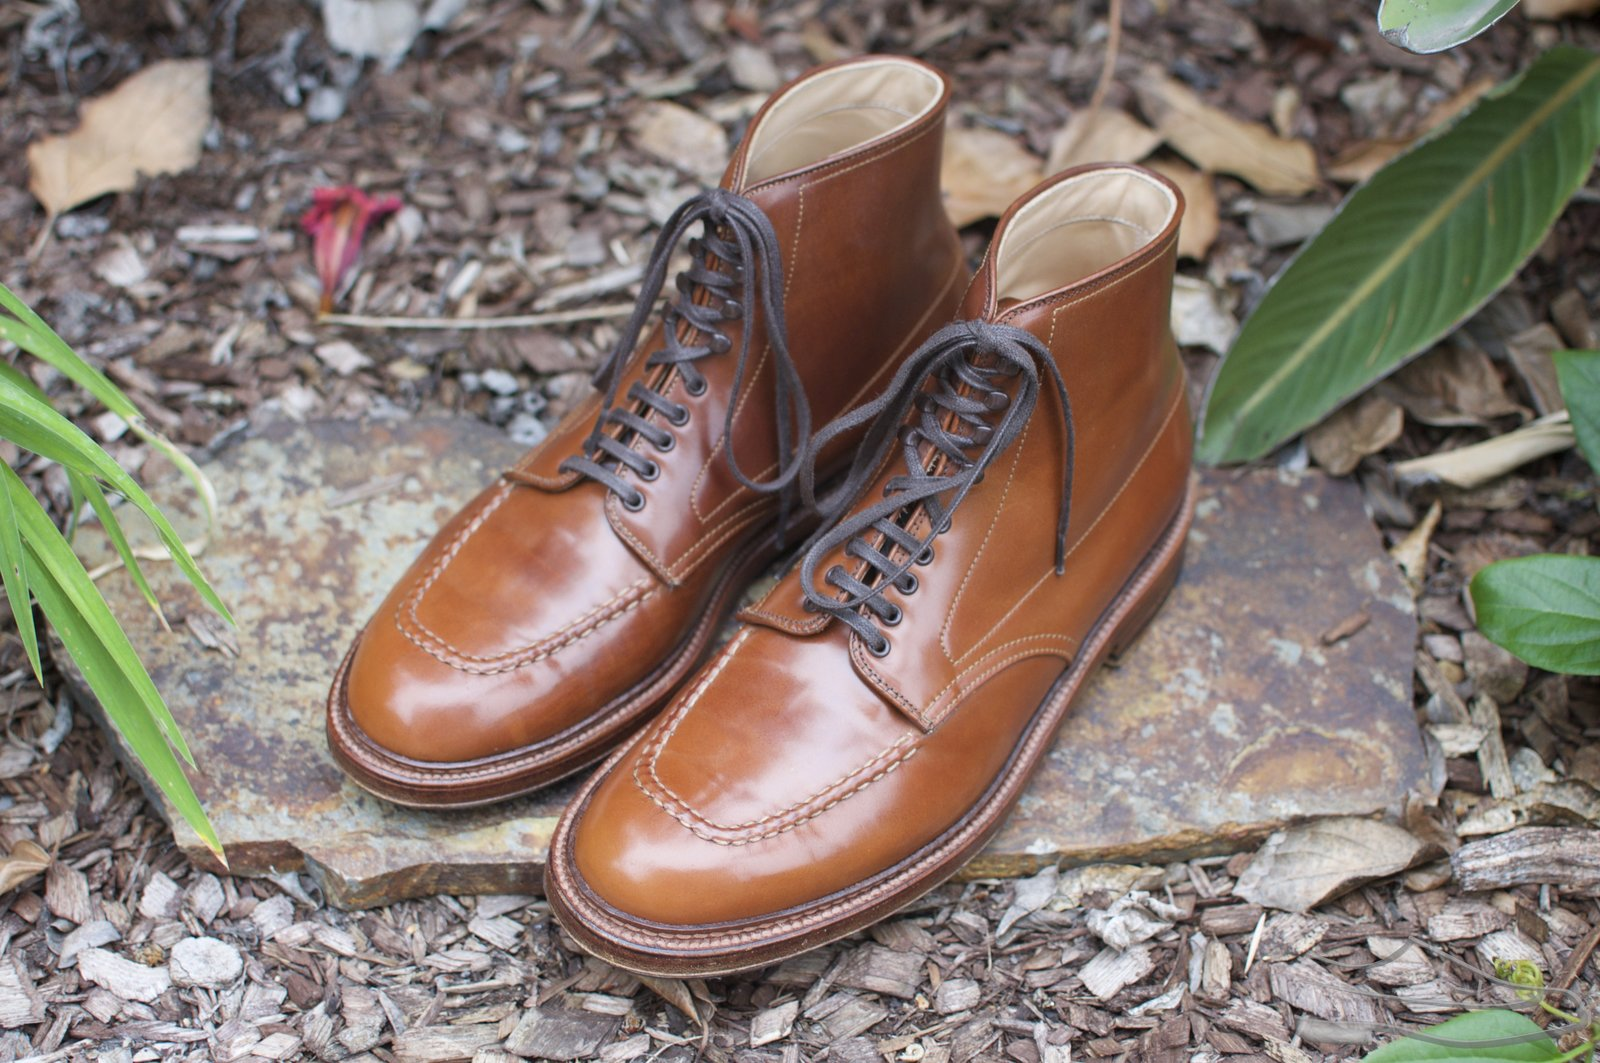 Alden Whiskey Shell Cordovan Indy Boots - 2021-05-13 - 1.jpg